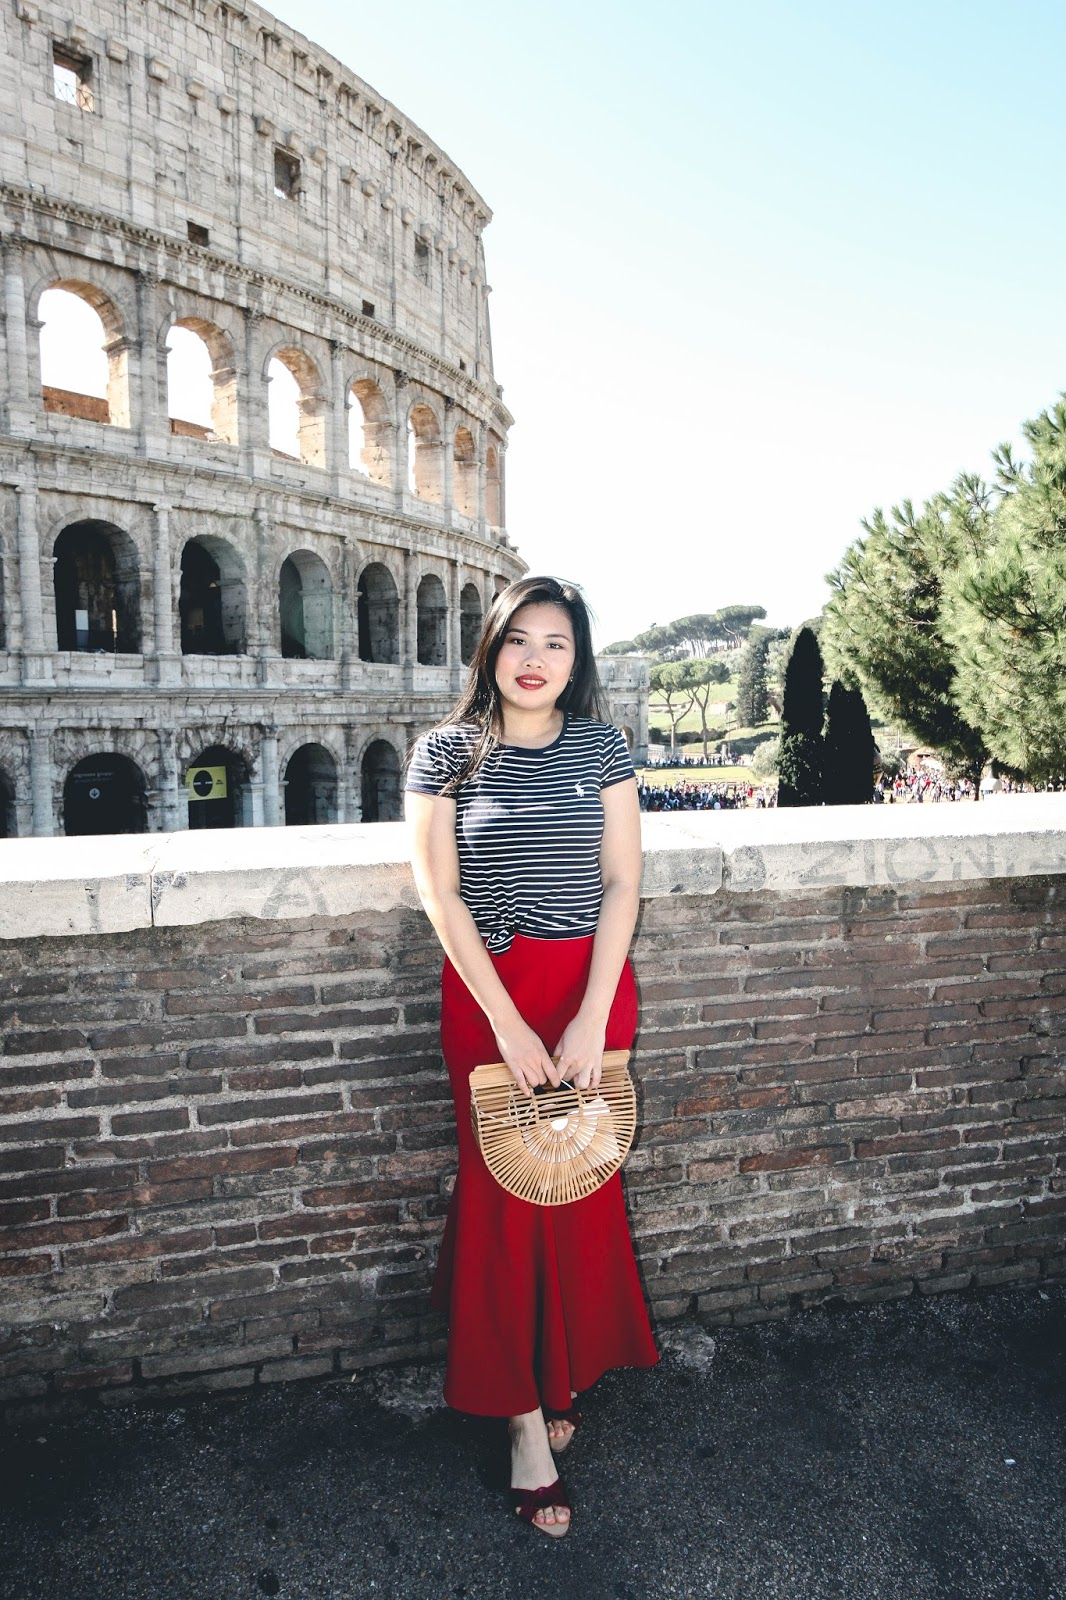 singapore blogger ralph lauren rome colosseum italy holiday europe summer outfit look book photography street style wiwt ootd